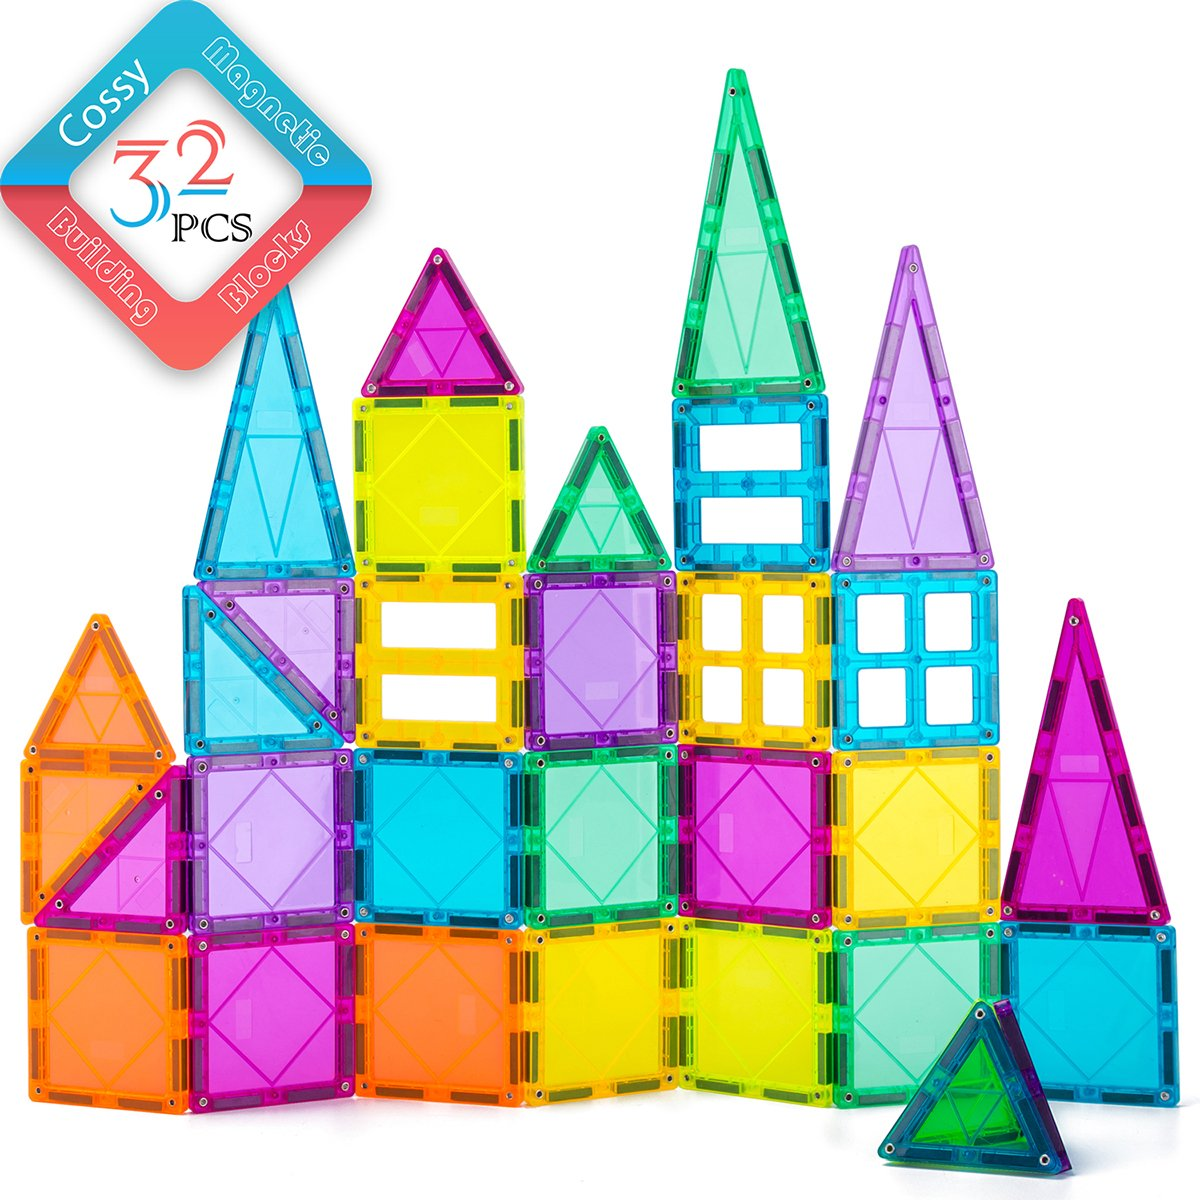 cossy 32Pcs Magnet Tiles Magnetic 3D Building Blocks Set Educational Construction Toys for 3+ Year Kids with Stronger Magnets, Rivets-Fastened, Inspirational, Recreational, Educational, Conventional